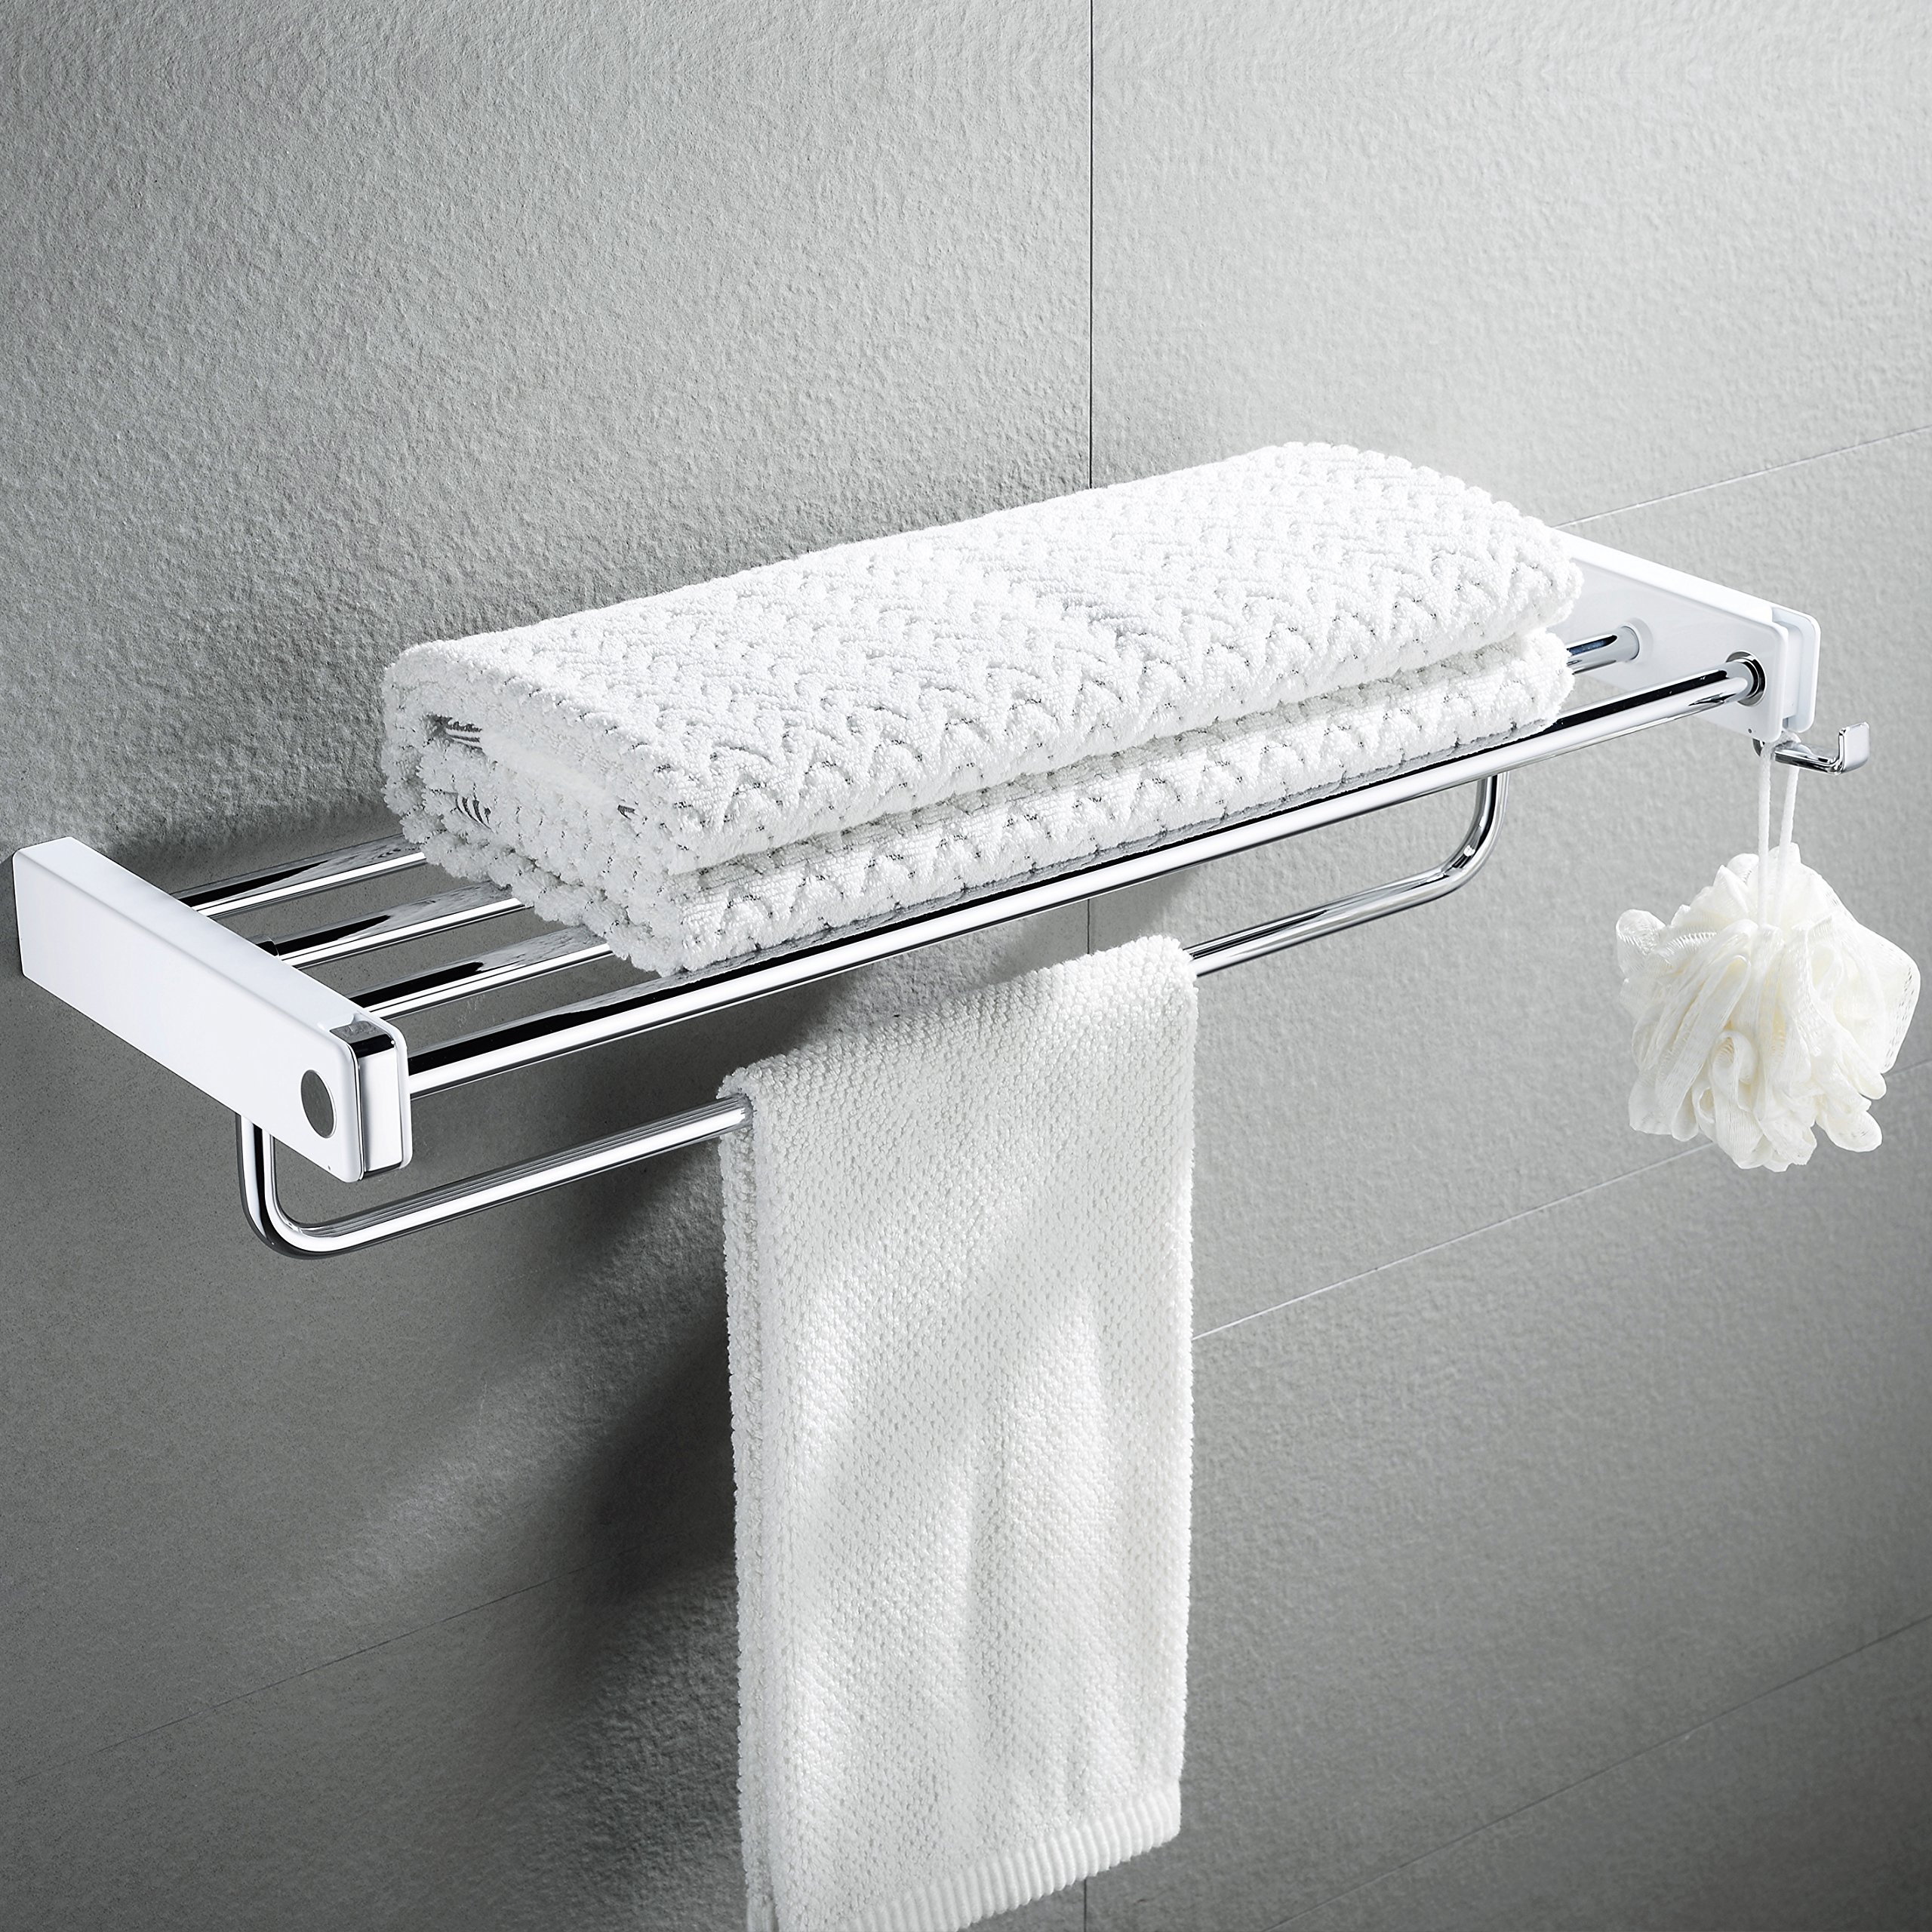 Towel Rack, Bathroom Double Towel Shelf Stainless Steel Plated Wall Mounted Foldable Bath Towel Rack with Hooks-SR SUN RISE